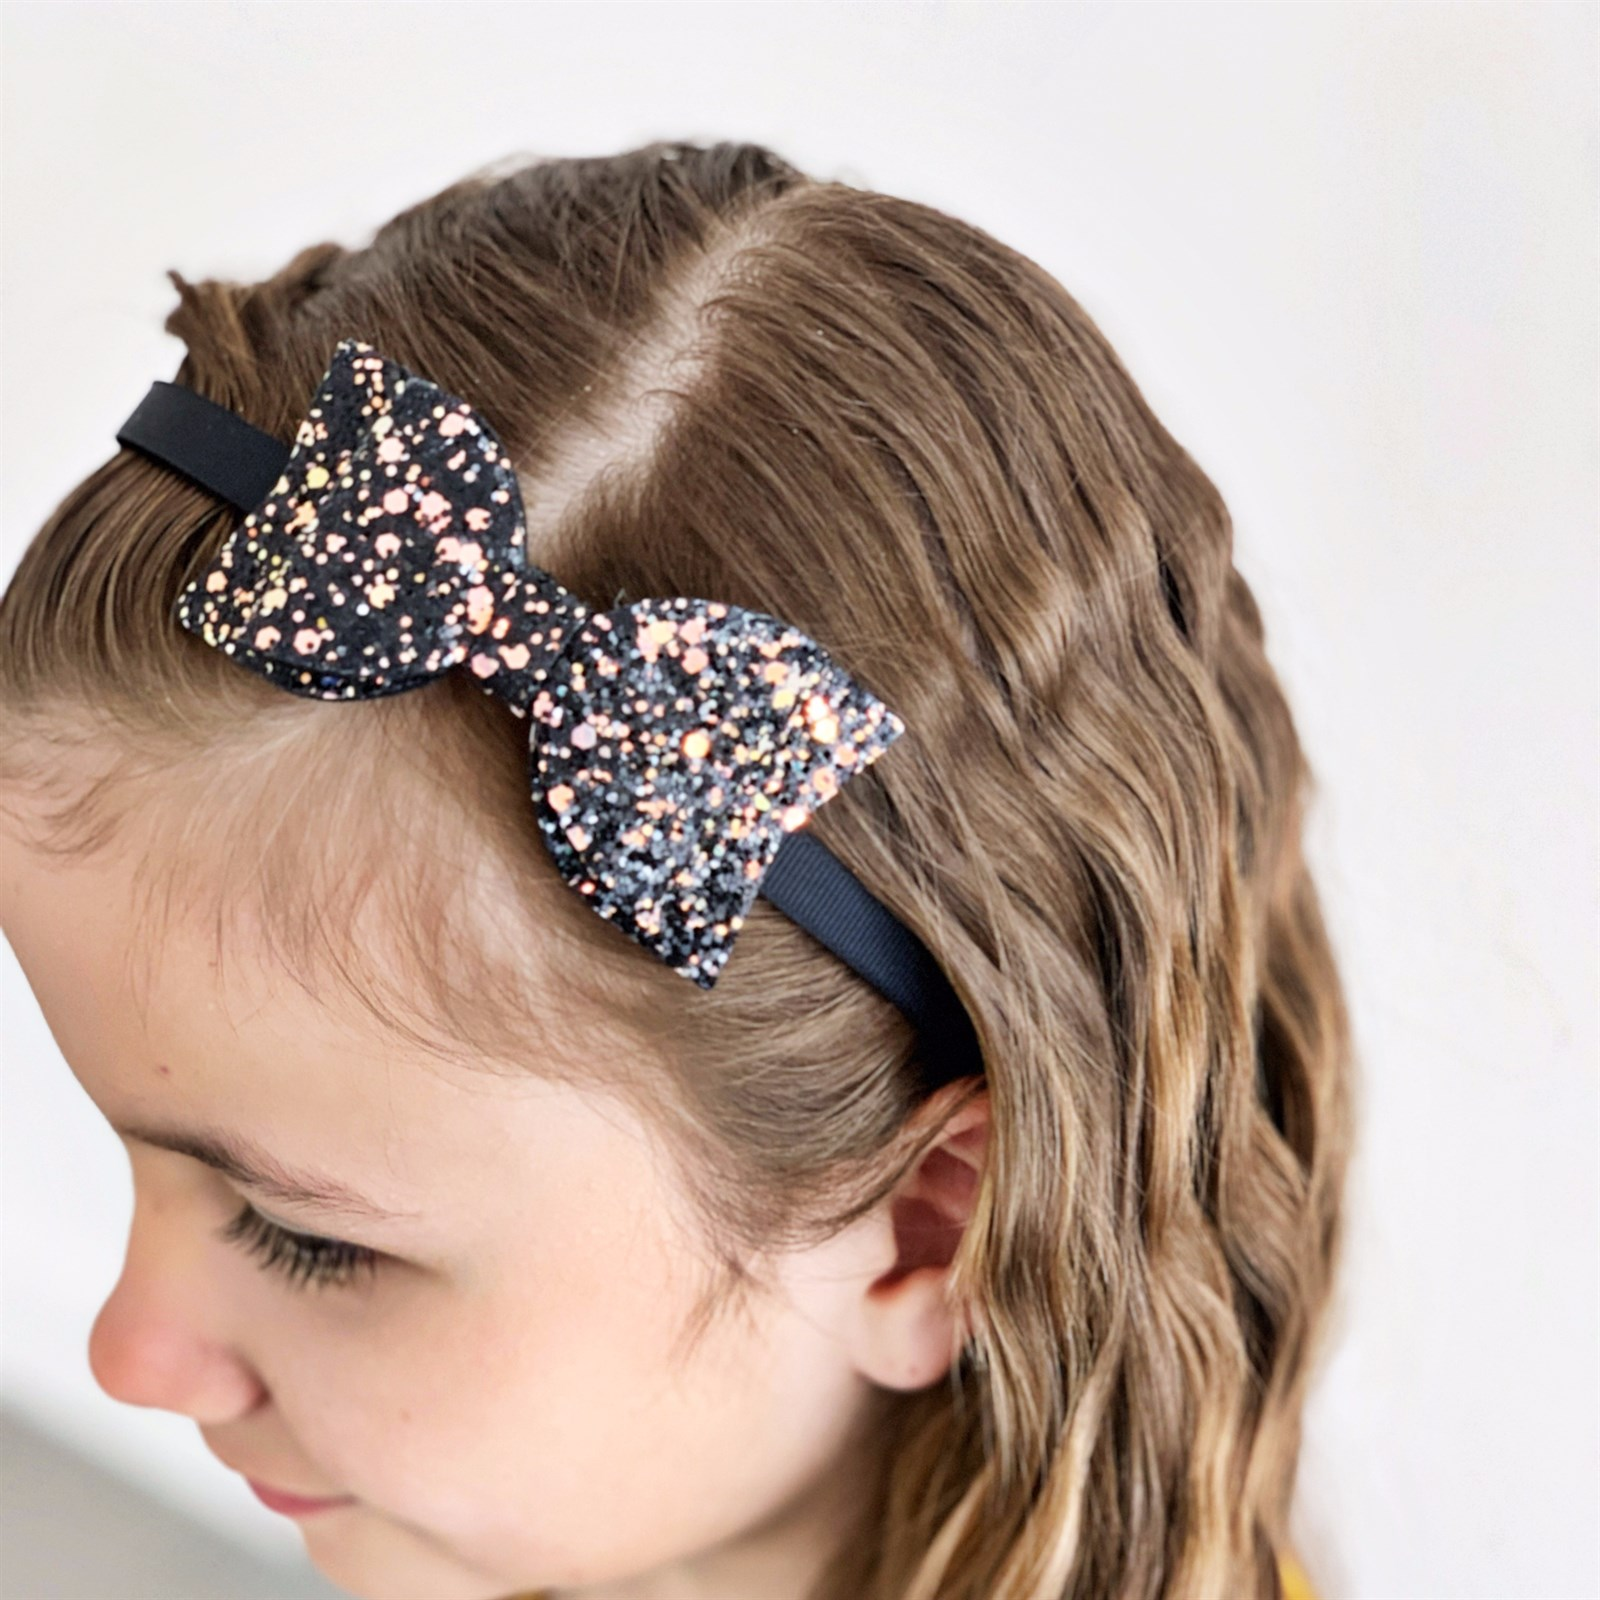 Darling Headbands Only $3.99 w/ Free Shipping